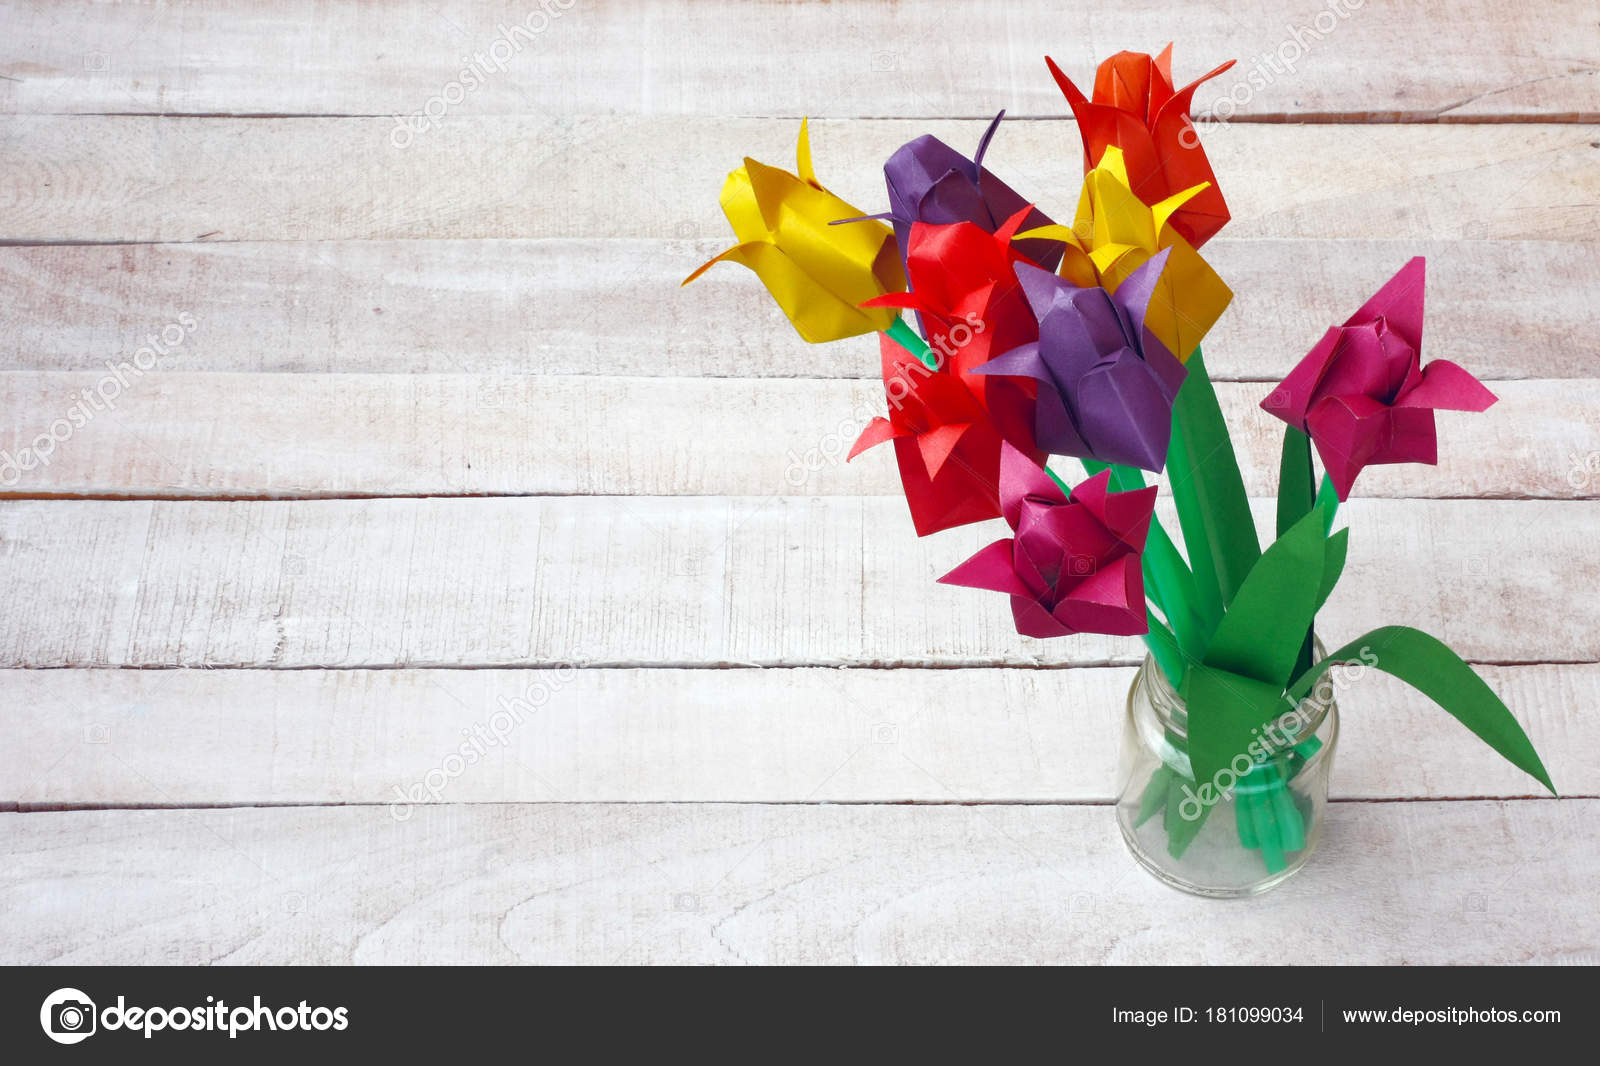 Colorful Origami Tulip Flowers Bouquet In Glass Vase Stock Photo